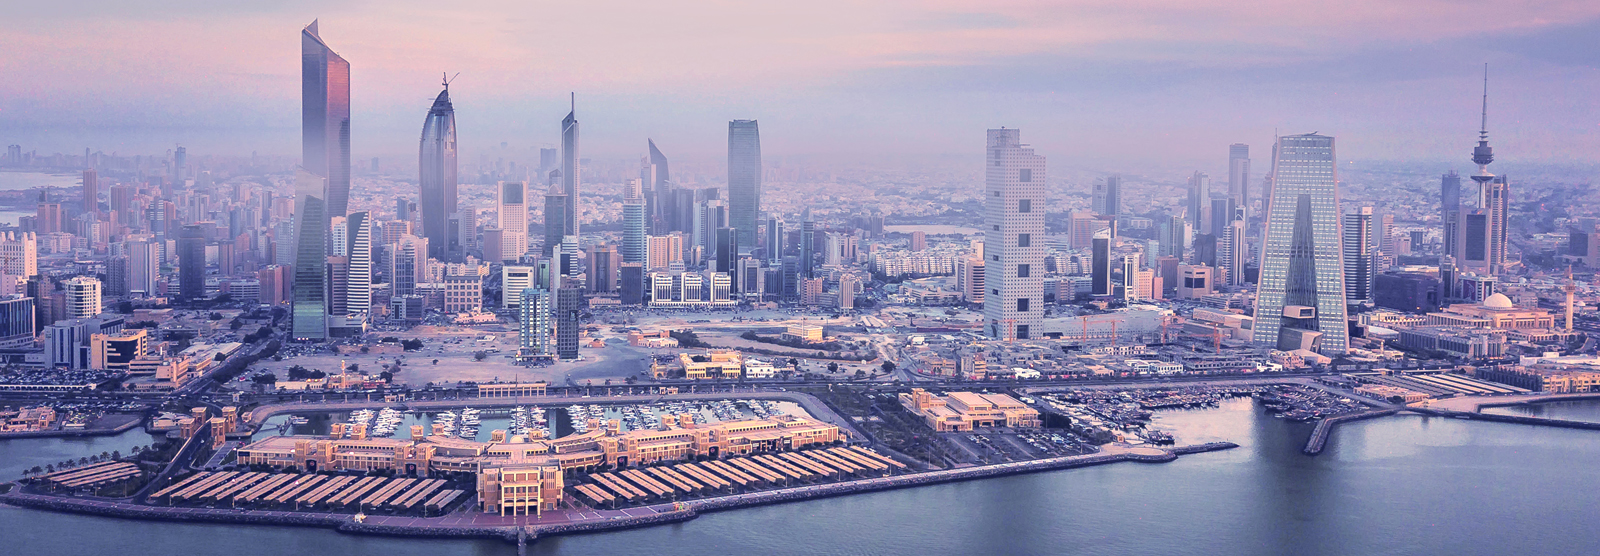 Panoramic View - Kuwait City